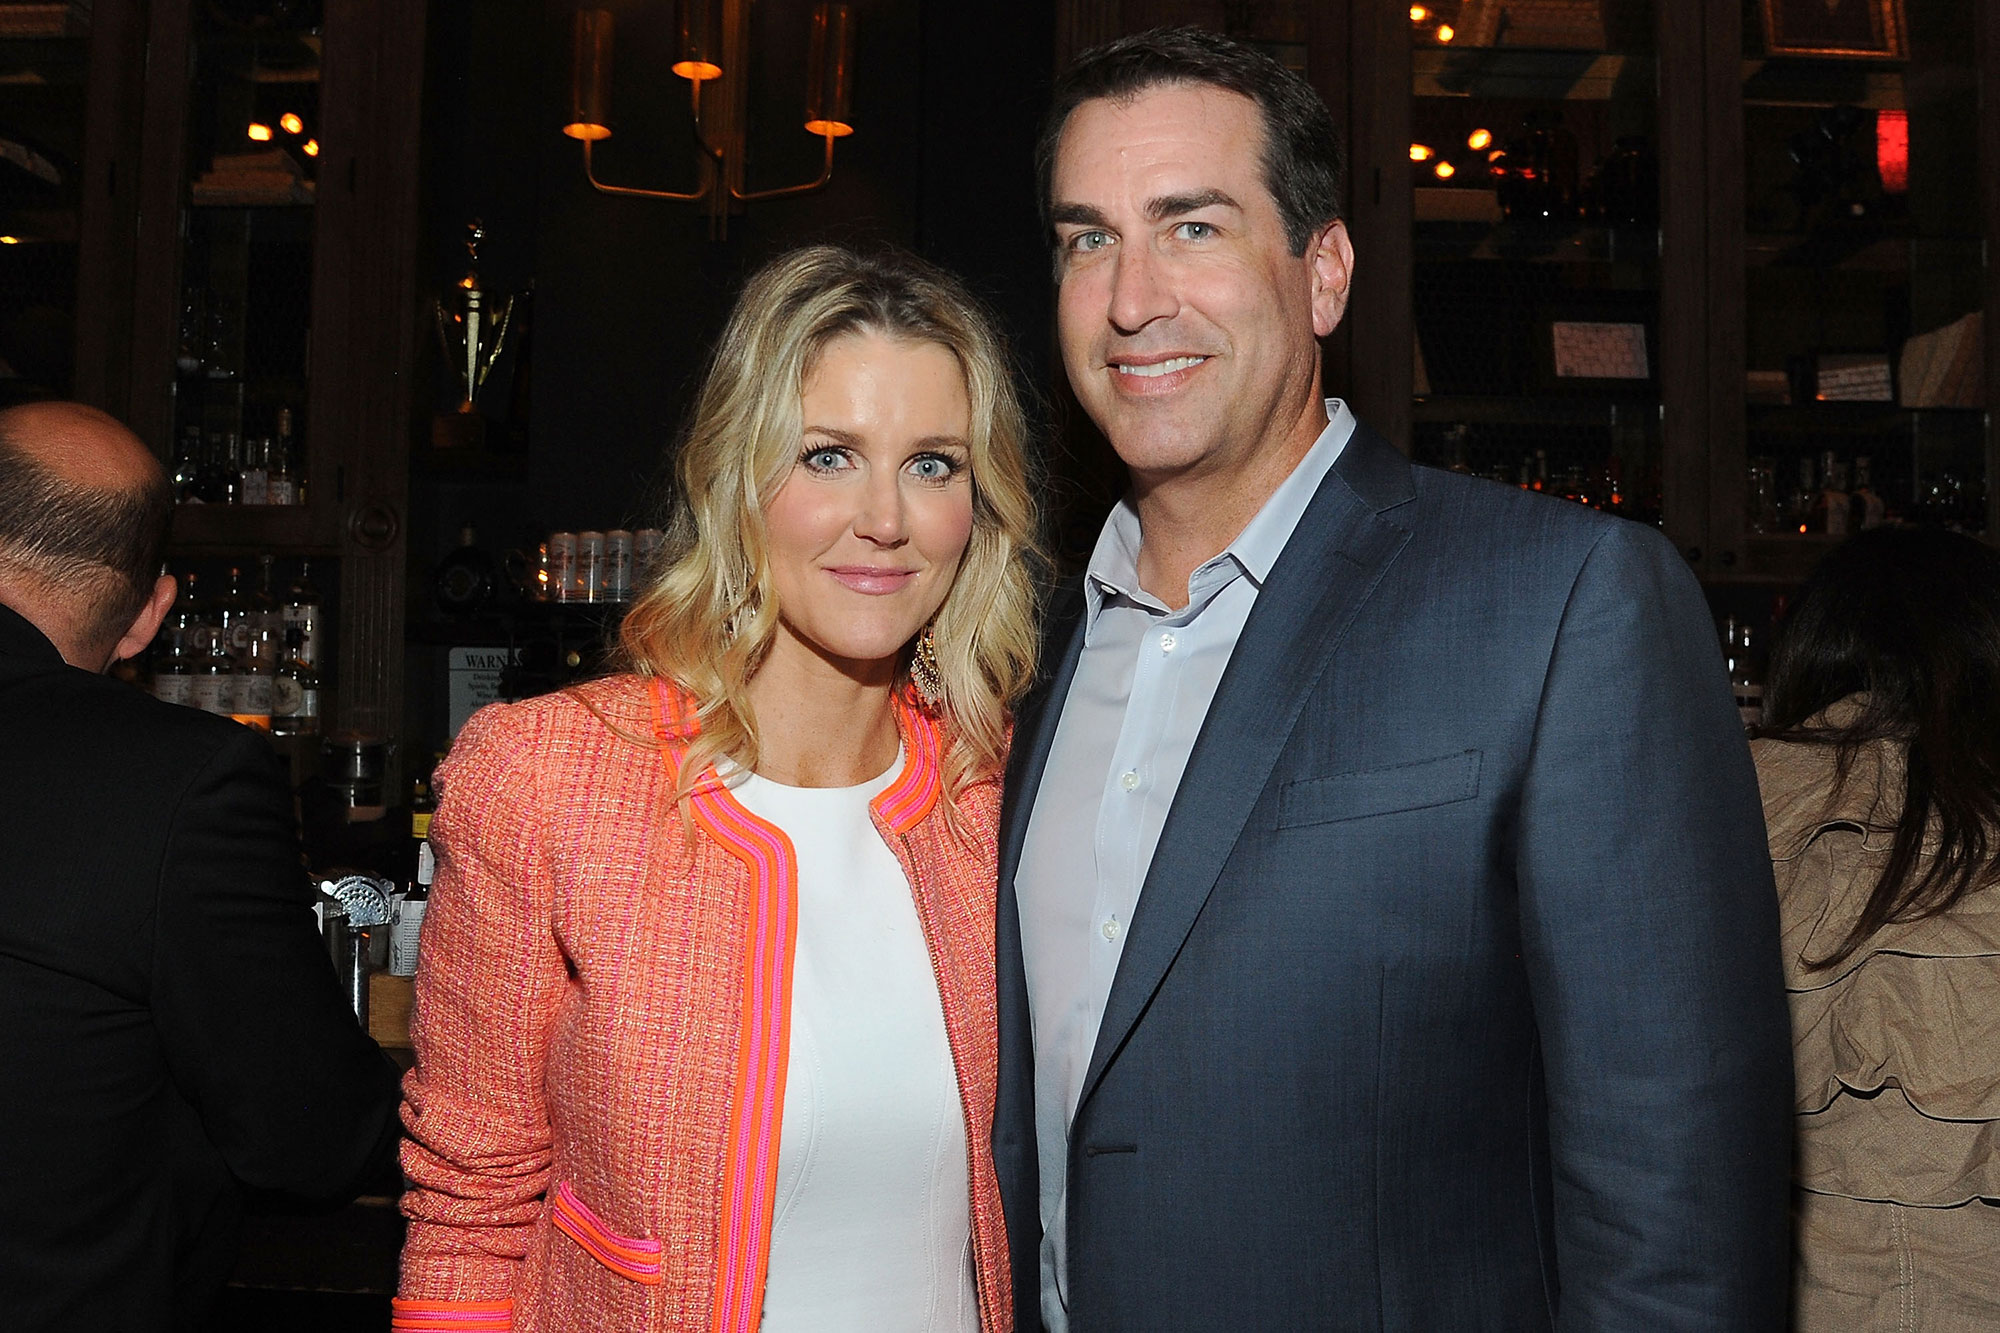 The couple are getting a divorce after 21 years of marriage.                             Tiffany filed for divorce on Oct. 5, online Ventura County court records show. She cited irreconcilable differences as the reason for the split and listed their date of separation as May 2, according to TMZ, which first reported on the news.                             Tiffany has also requested joint custody of their children, daughter Abigail, 16, and son George, 12.                             A rep for the star did not immediately respond to PEOPLE's request for comment.